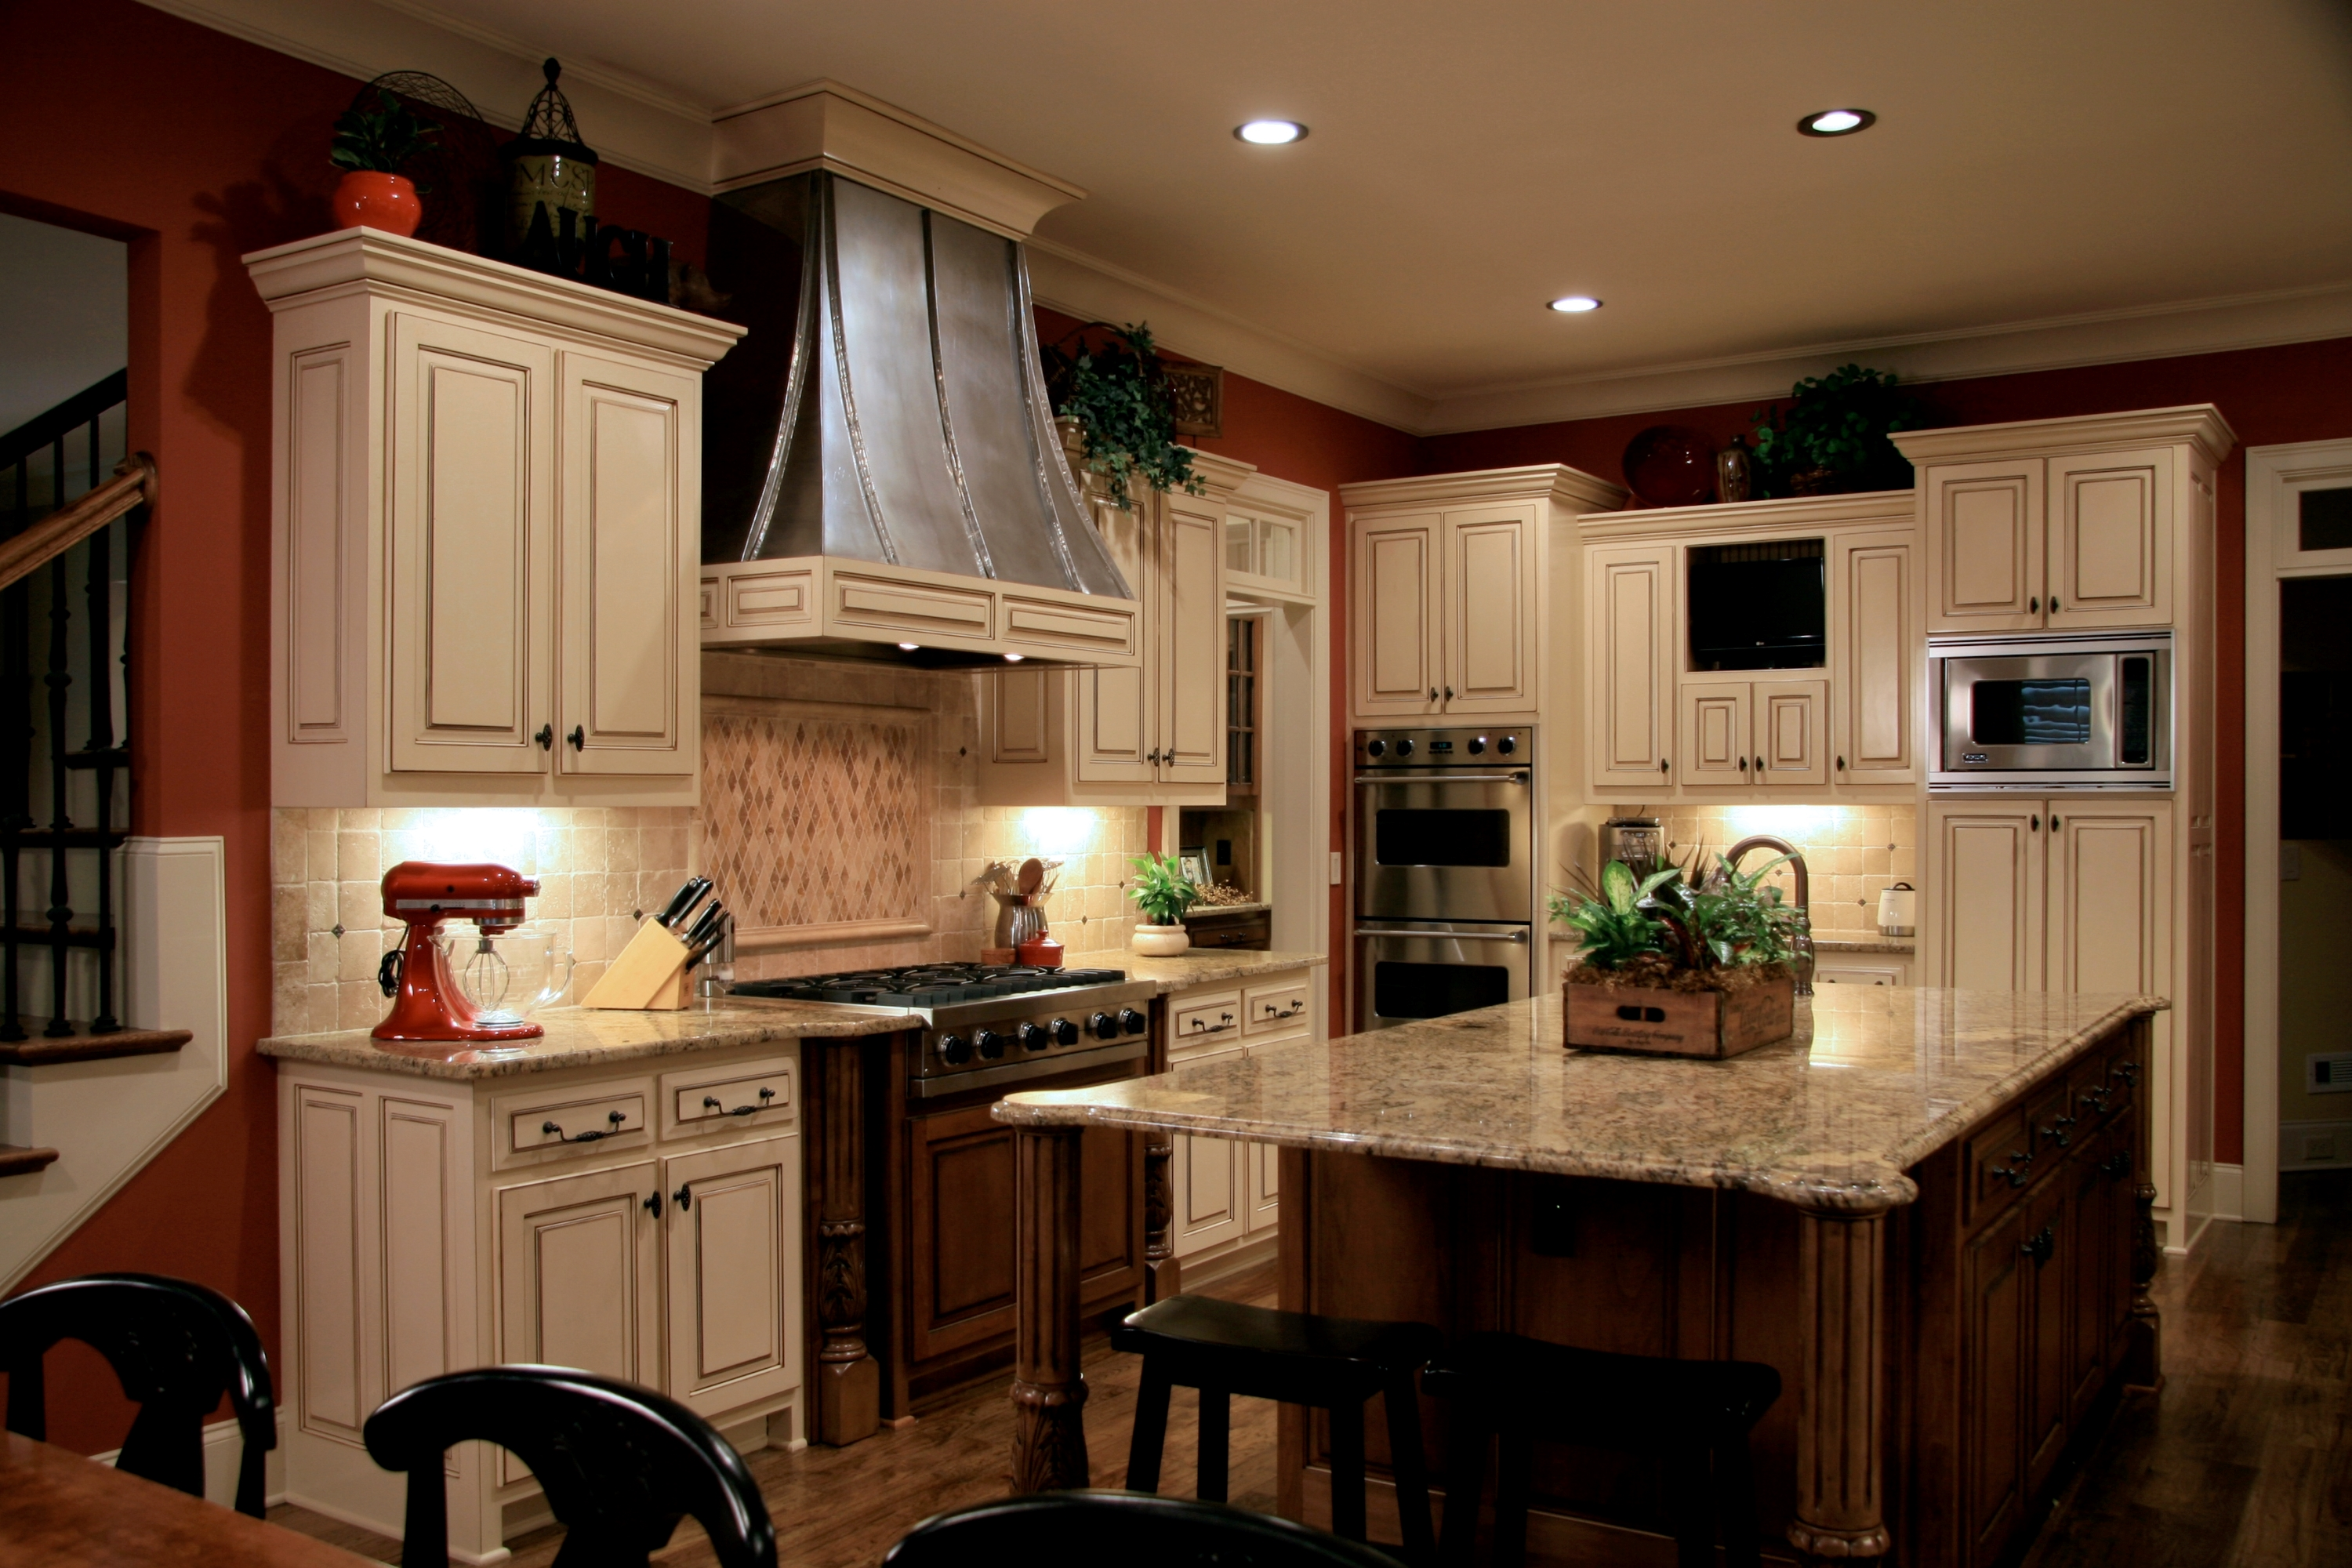 Awesome Recessed Lighting In A Kitchen